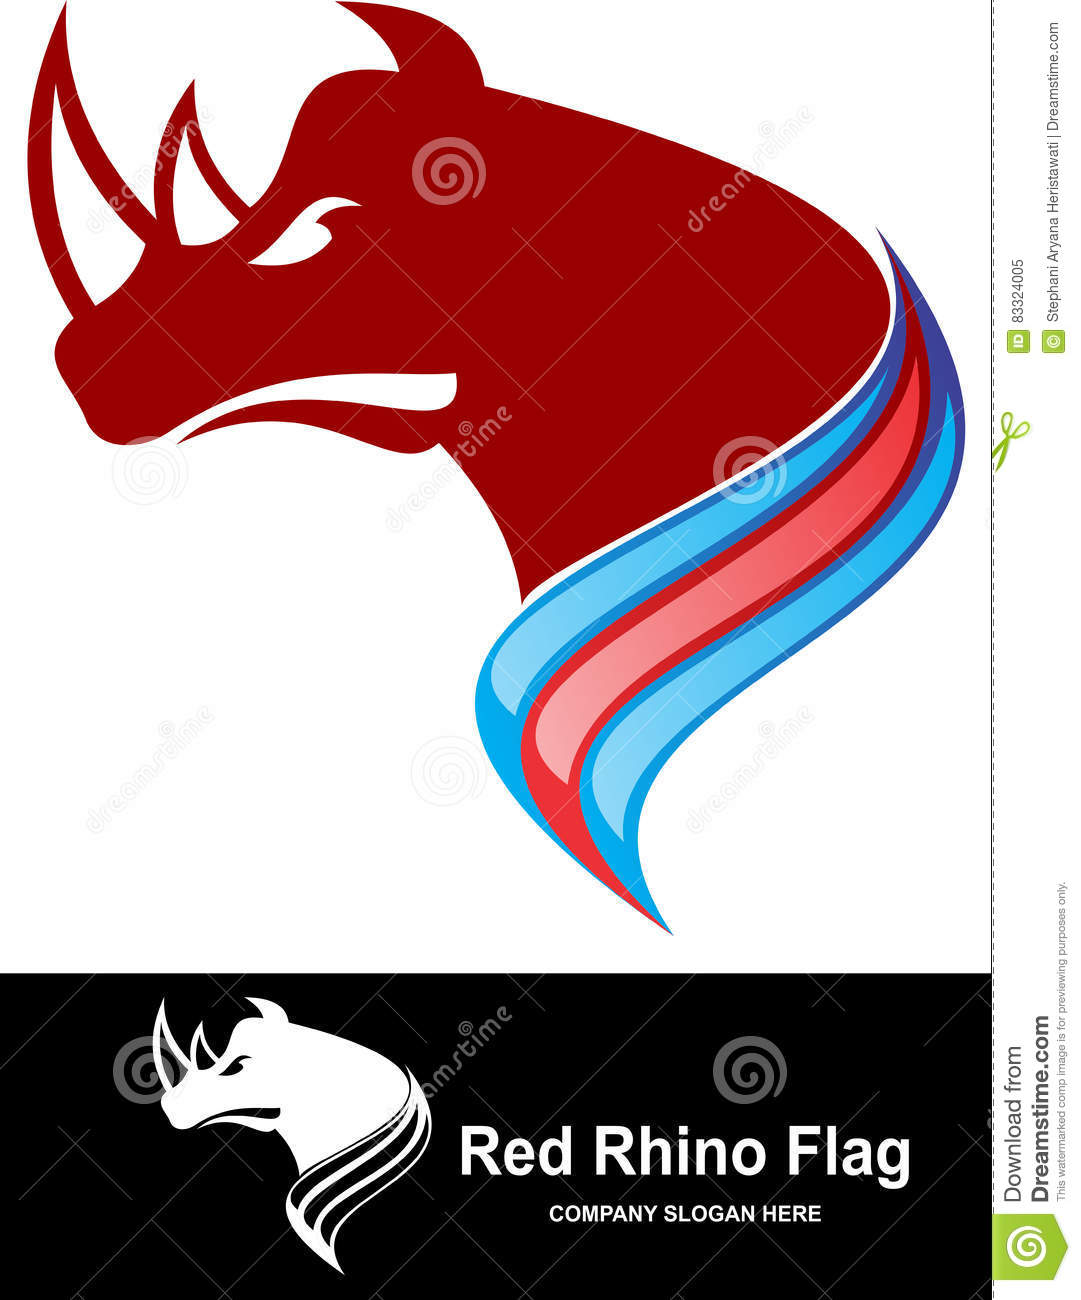 Red Rhino Web Design